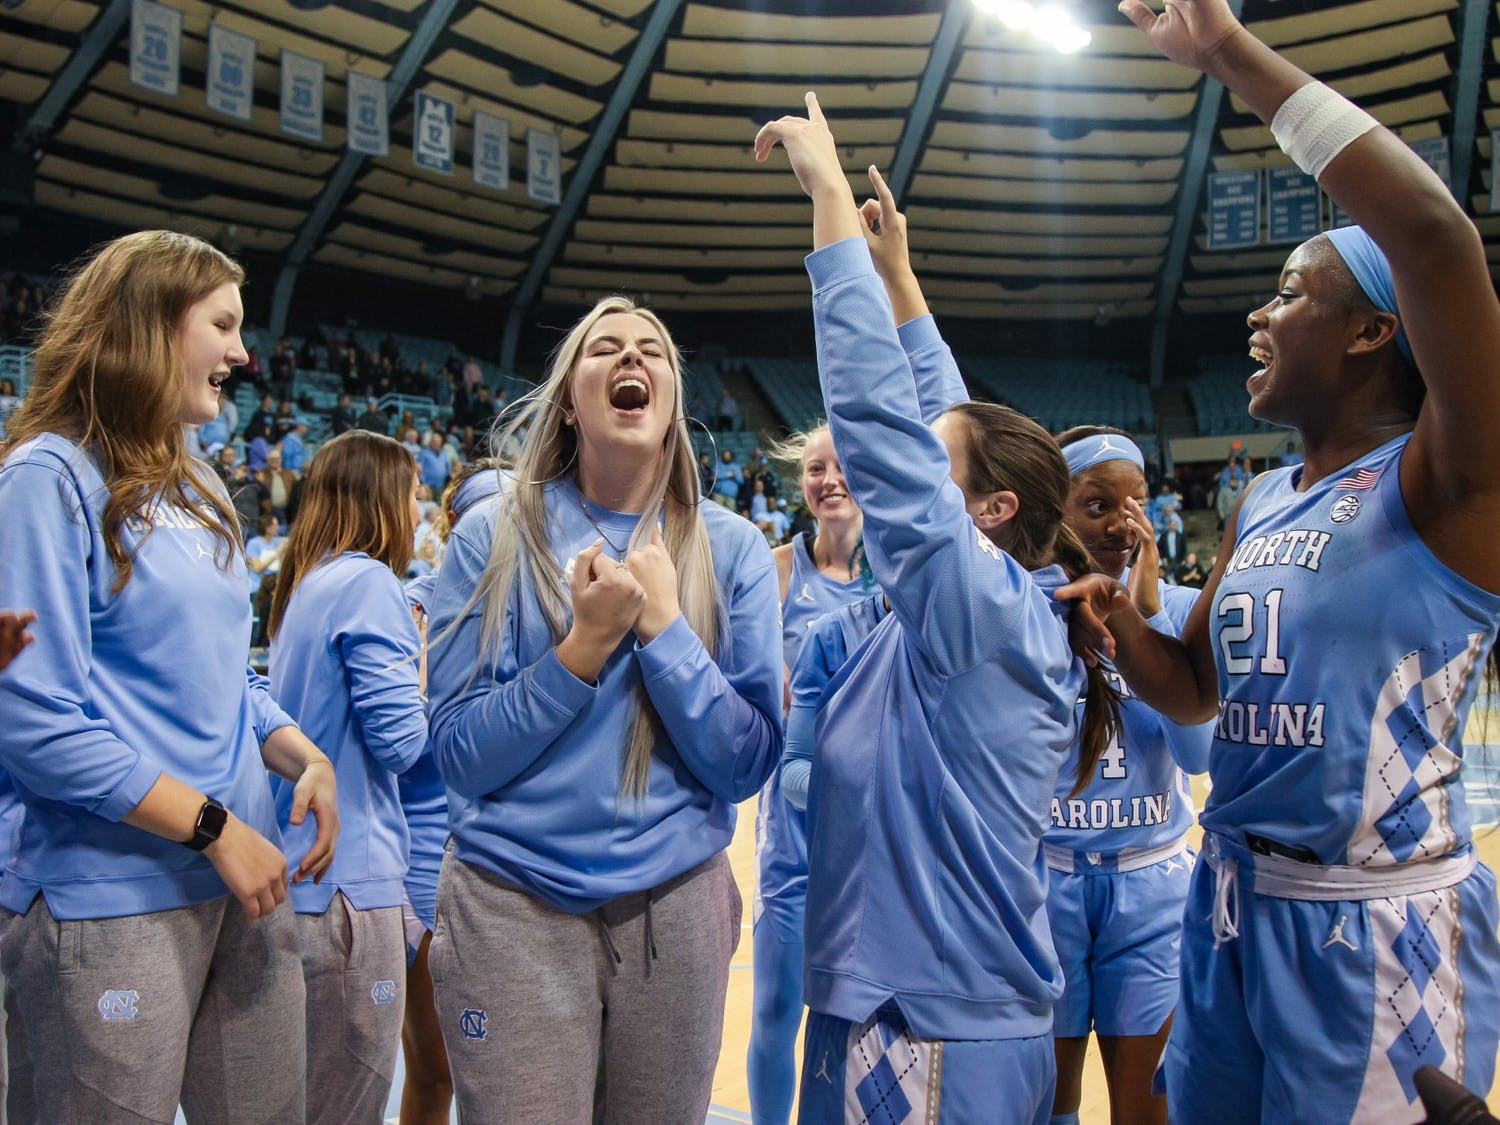 UNC's women's basketball team celebrates their win against NC State on Thursday, Jan. 9, 2020. UNC broke NC State's undefeated streak with a score of 66-60.